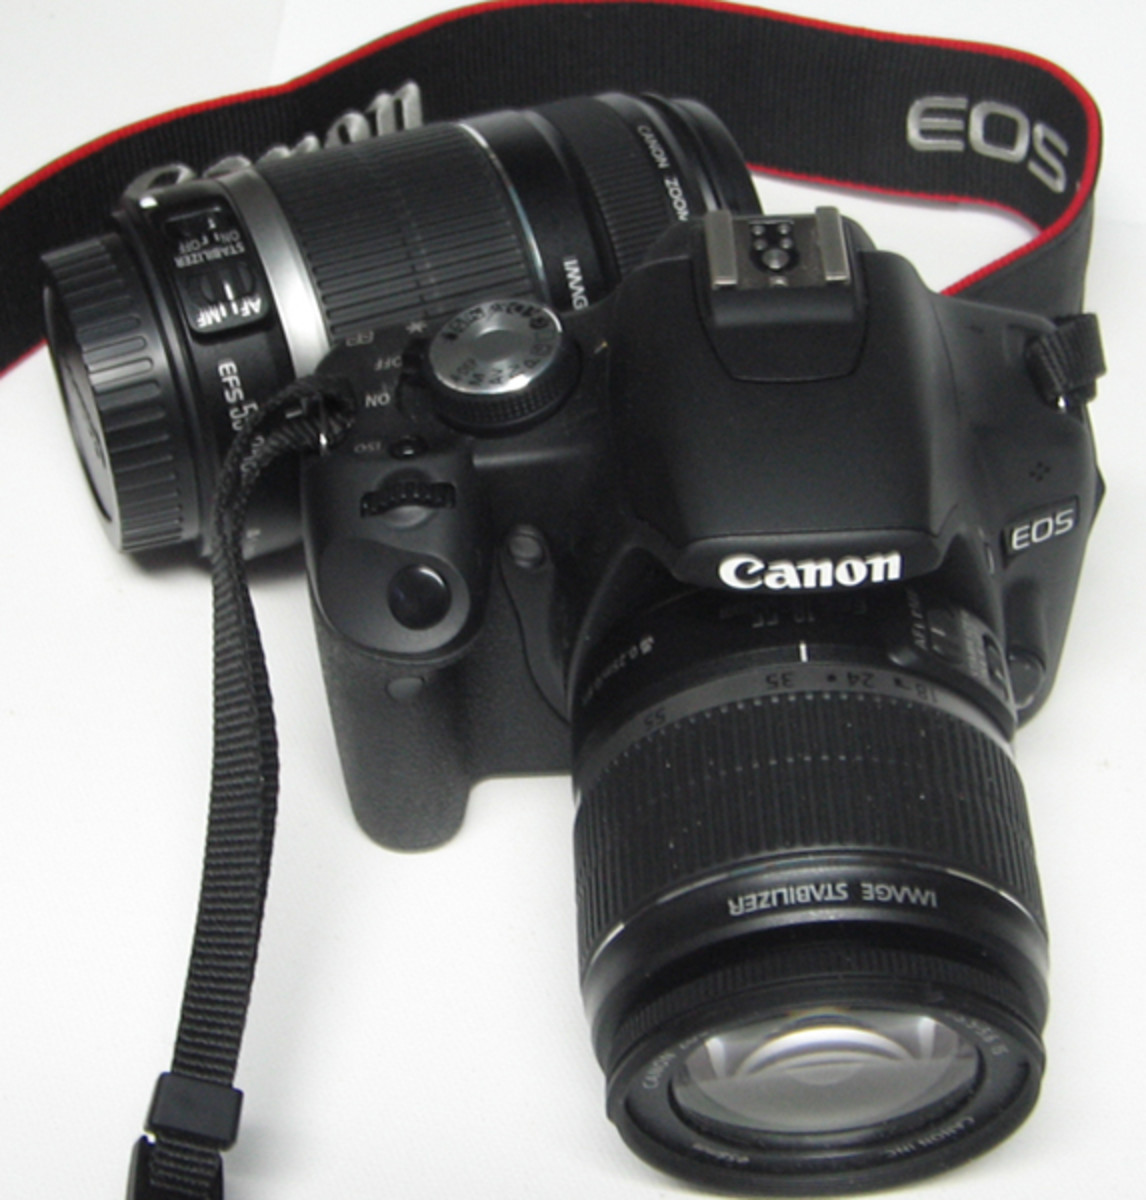 Digital Photography—Canon DSLR 500D Camera ds126231